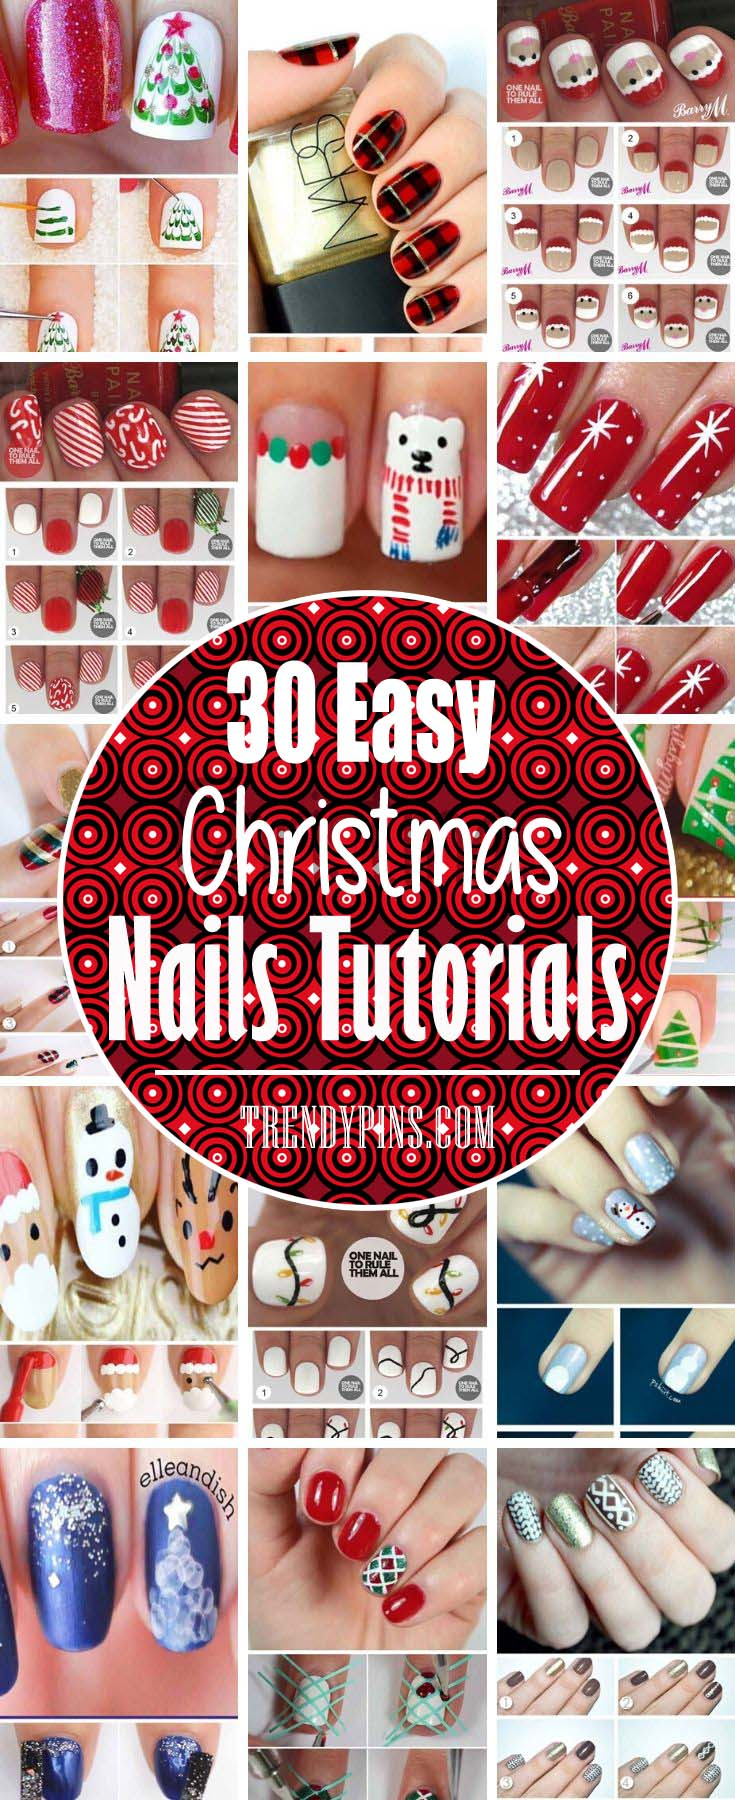 With Christmas season here, why not style your nails to match? Consider these beautiful options #Christmas #nails #tutorials #trendypins